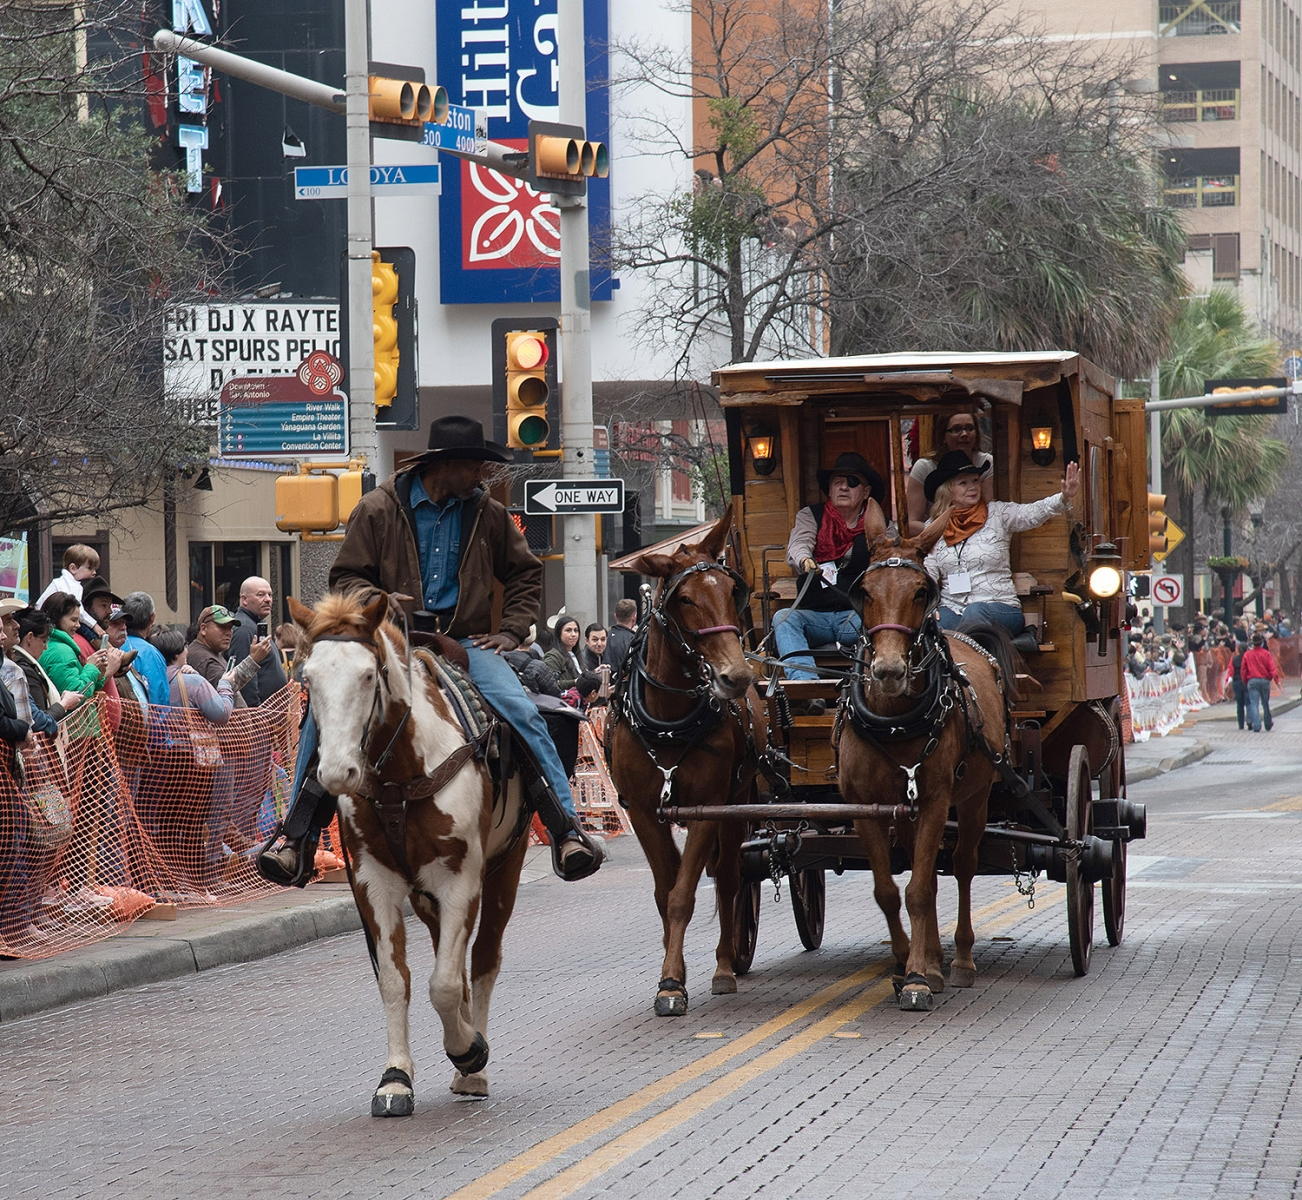 Participants in the Western Heritage Parade and Cattle Drive Feb. 2 on Houston Street. <em><b>V. Finster | Heron</b></em>